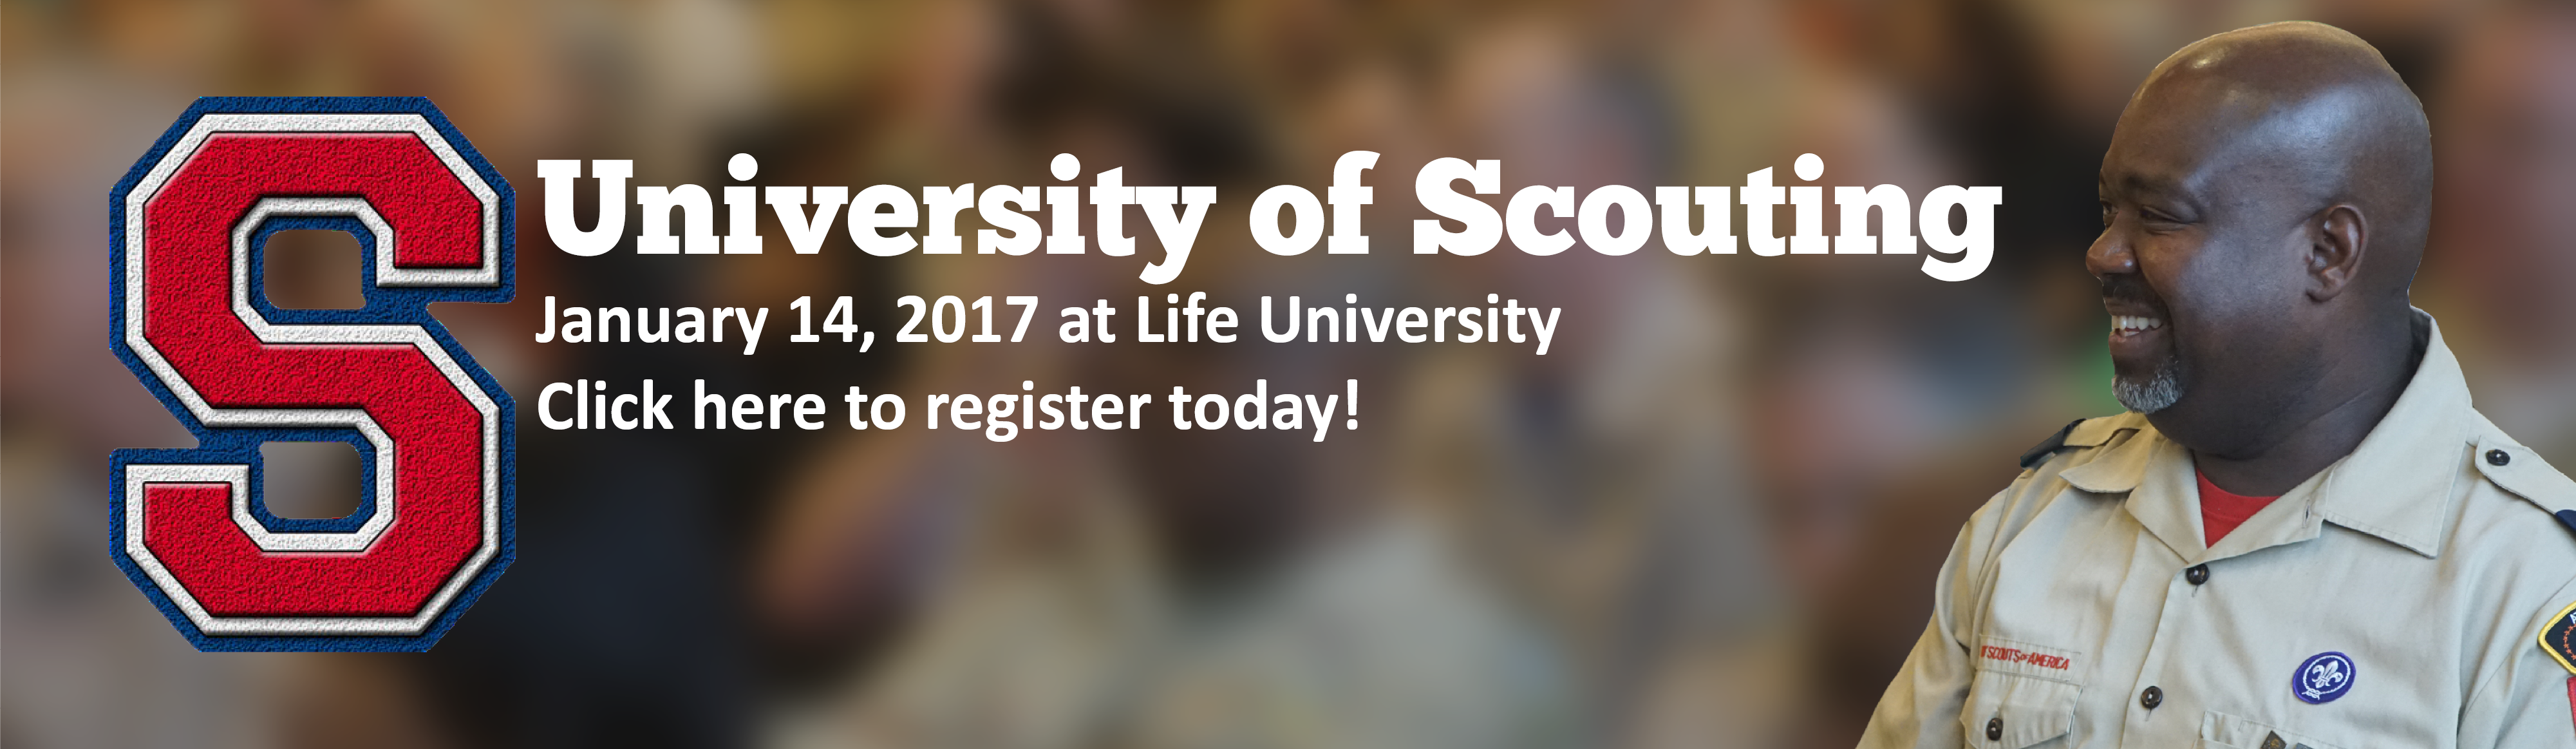 Click here to register for University of Scouting